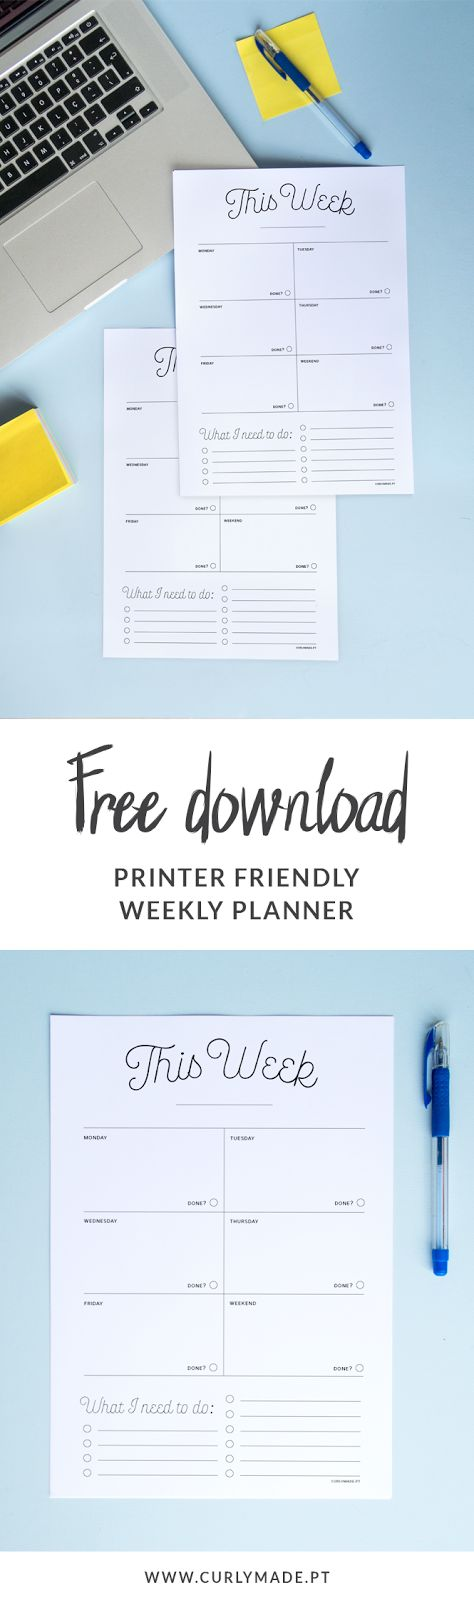 Best 25+ Weekly planner printable ideas on Pinterest Weekly - agenda download free